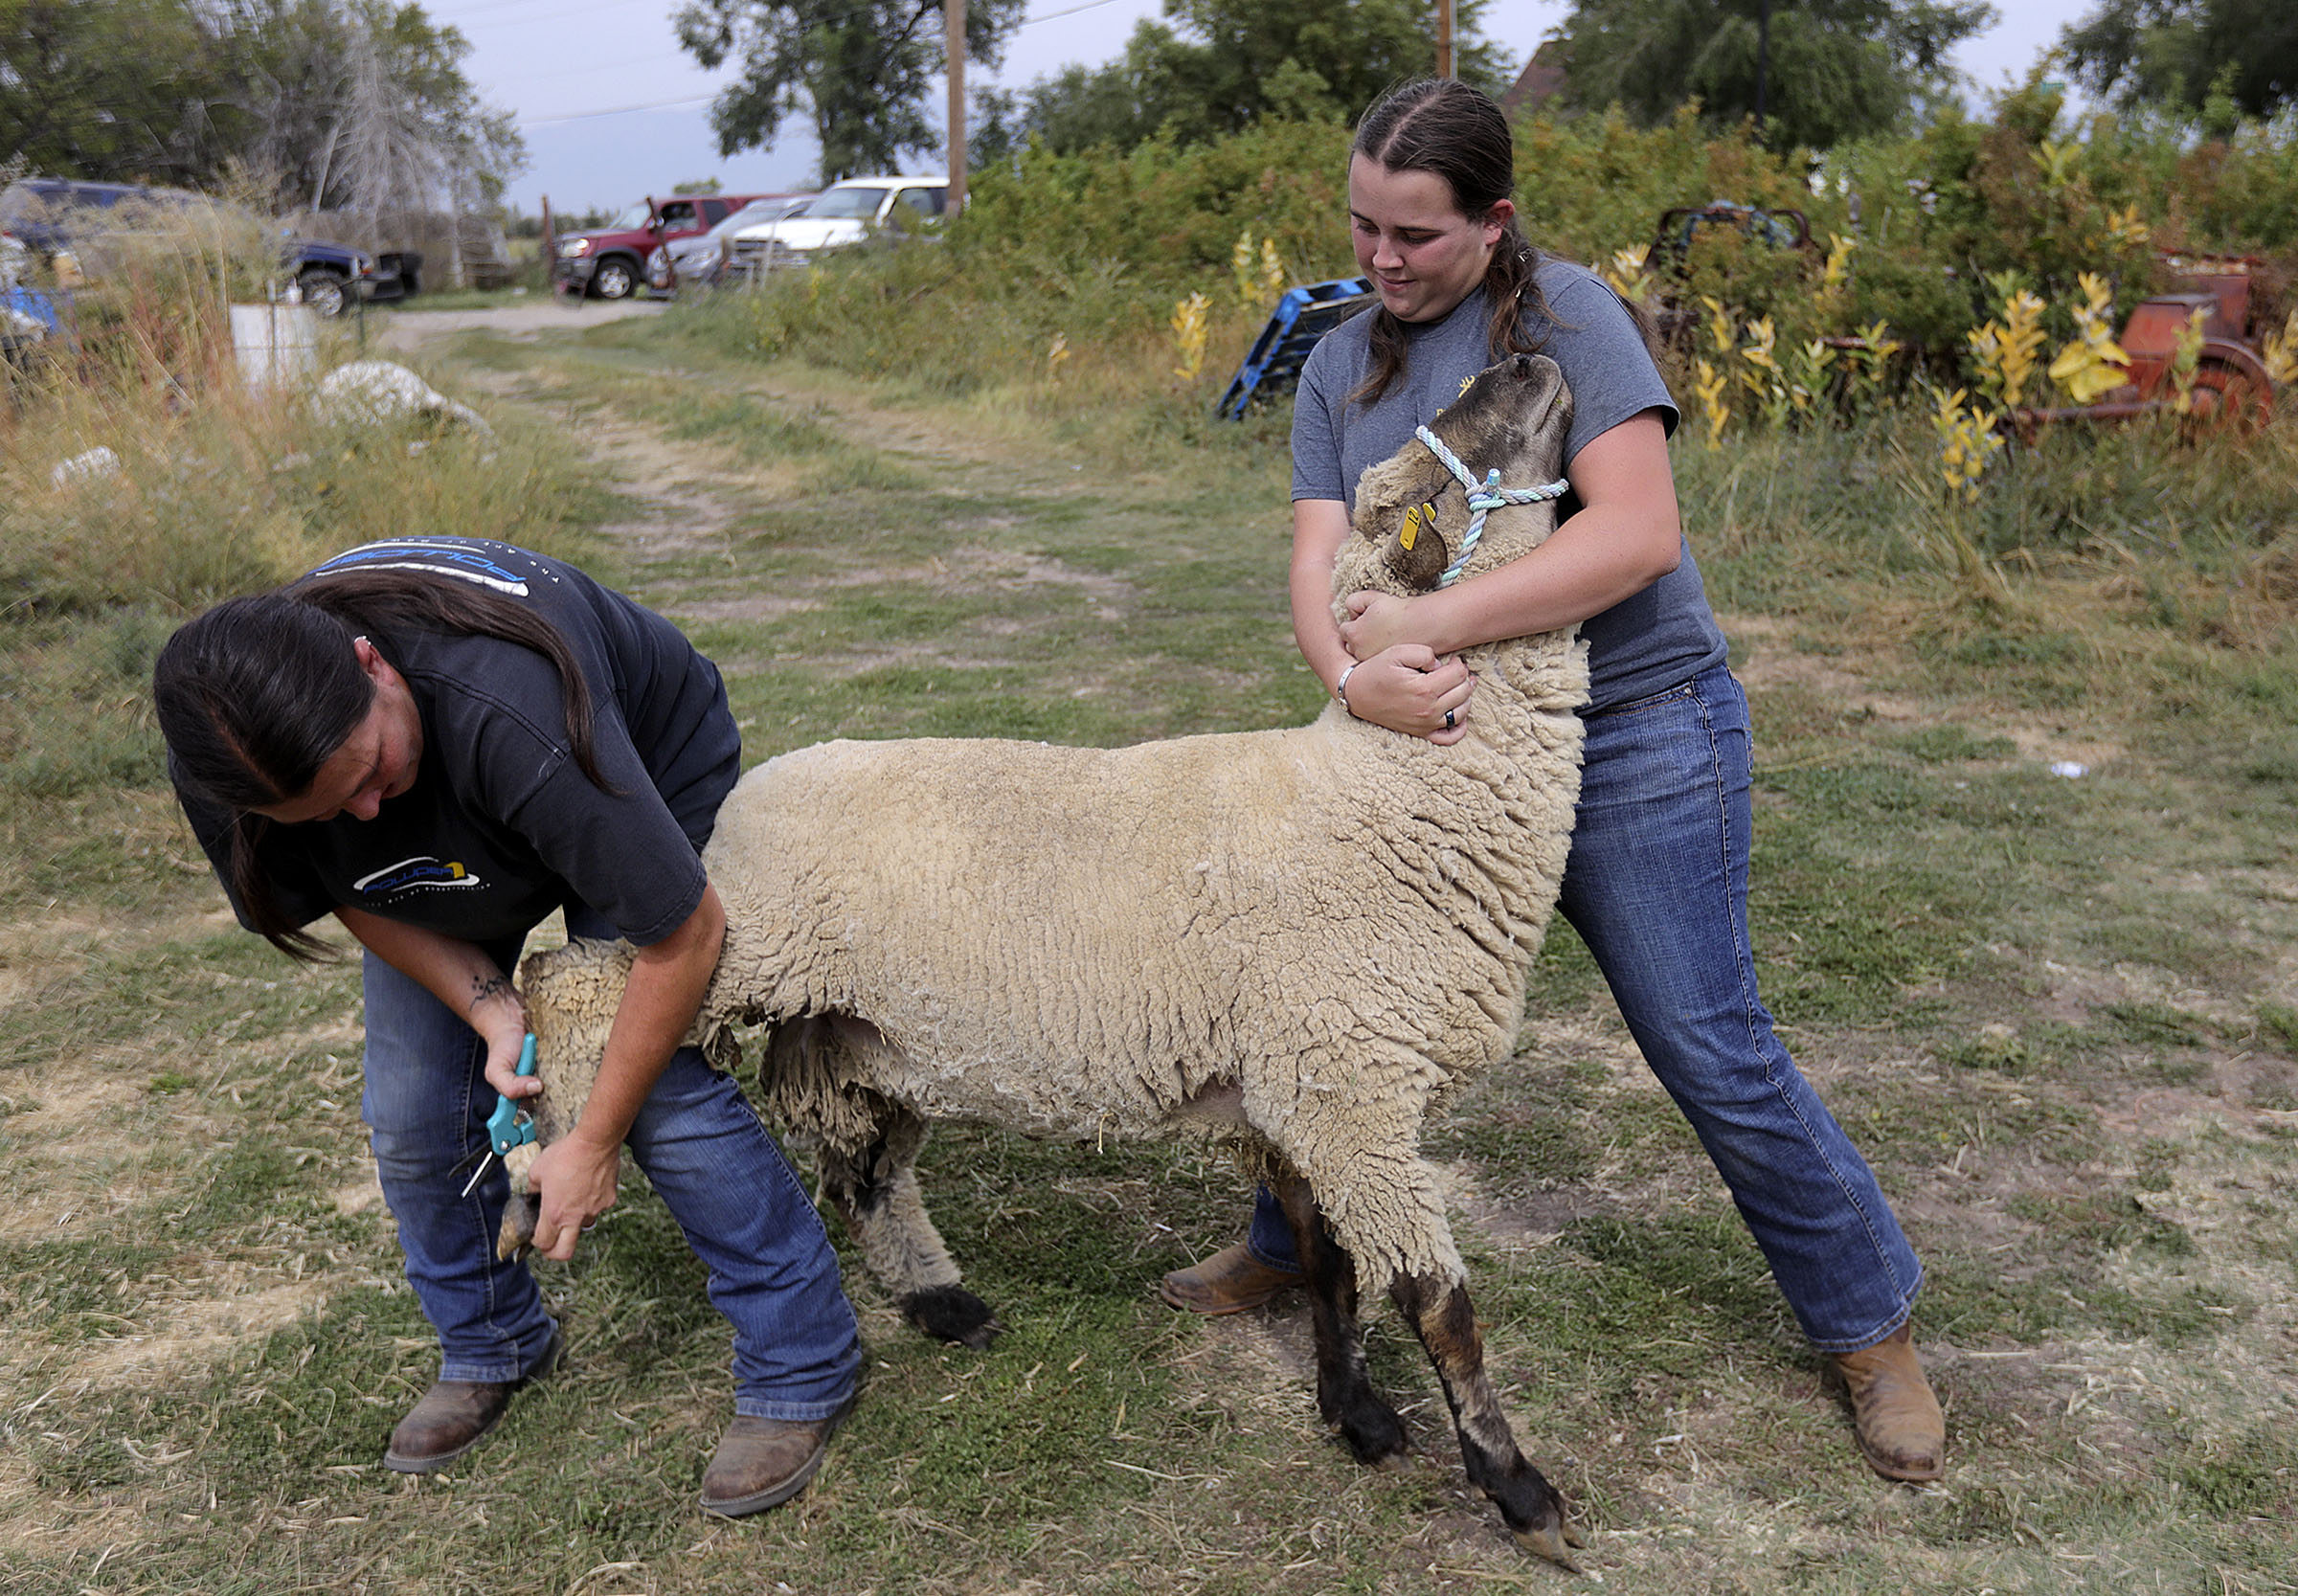 Danielle Blanch trims the hoofs of a sheep as her daughter, Teala McCully, helps hold it in Hooper, Weber County, on Friday, Sept. 18, 2020. Interior Secretary David Bernhardt was in Salt Lake City Friday for a number of events, including listening in to the concerns of the agricultural community.